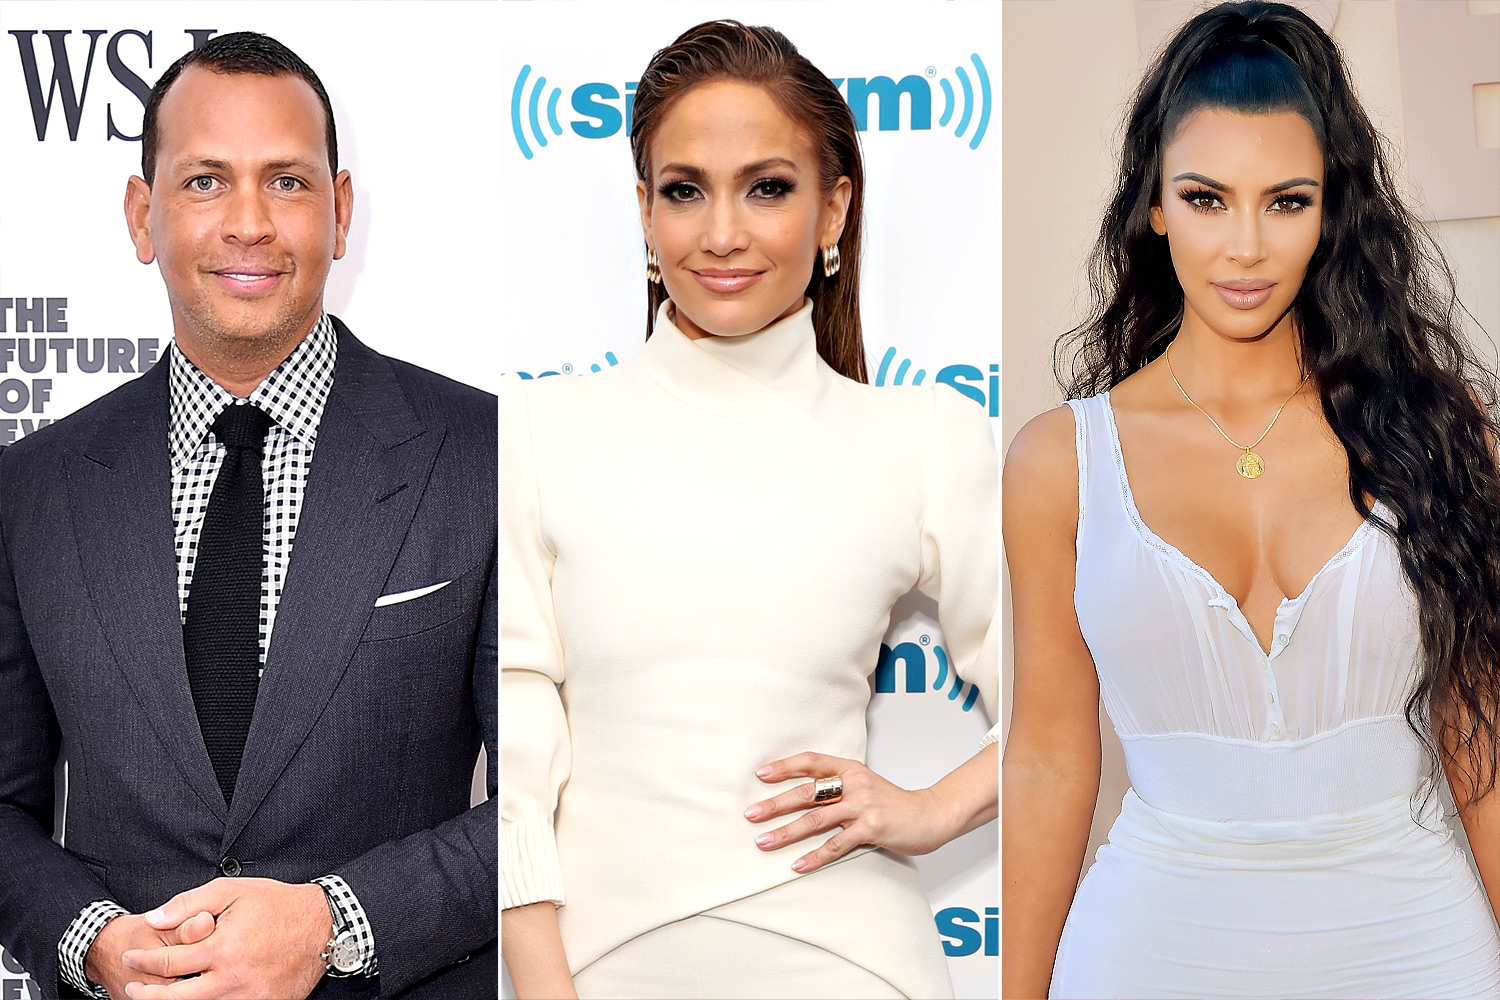 Alex Rodriguez; Jennifer Lopez and Kim Kardashian